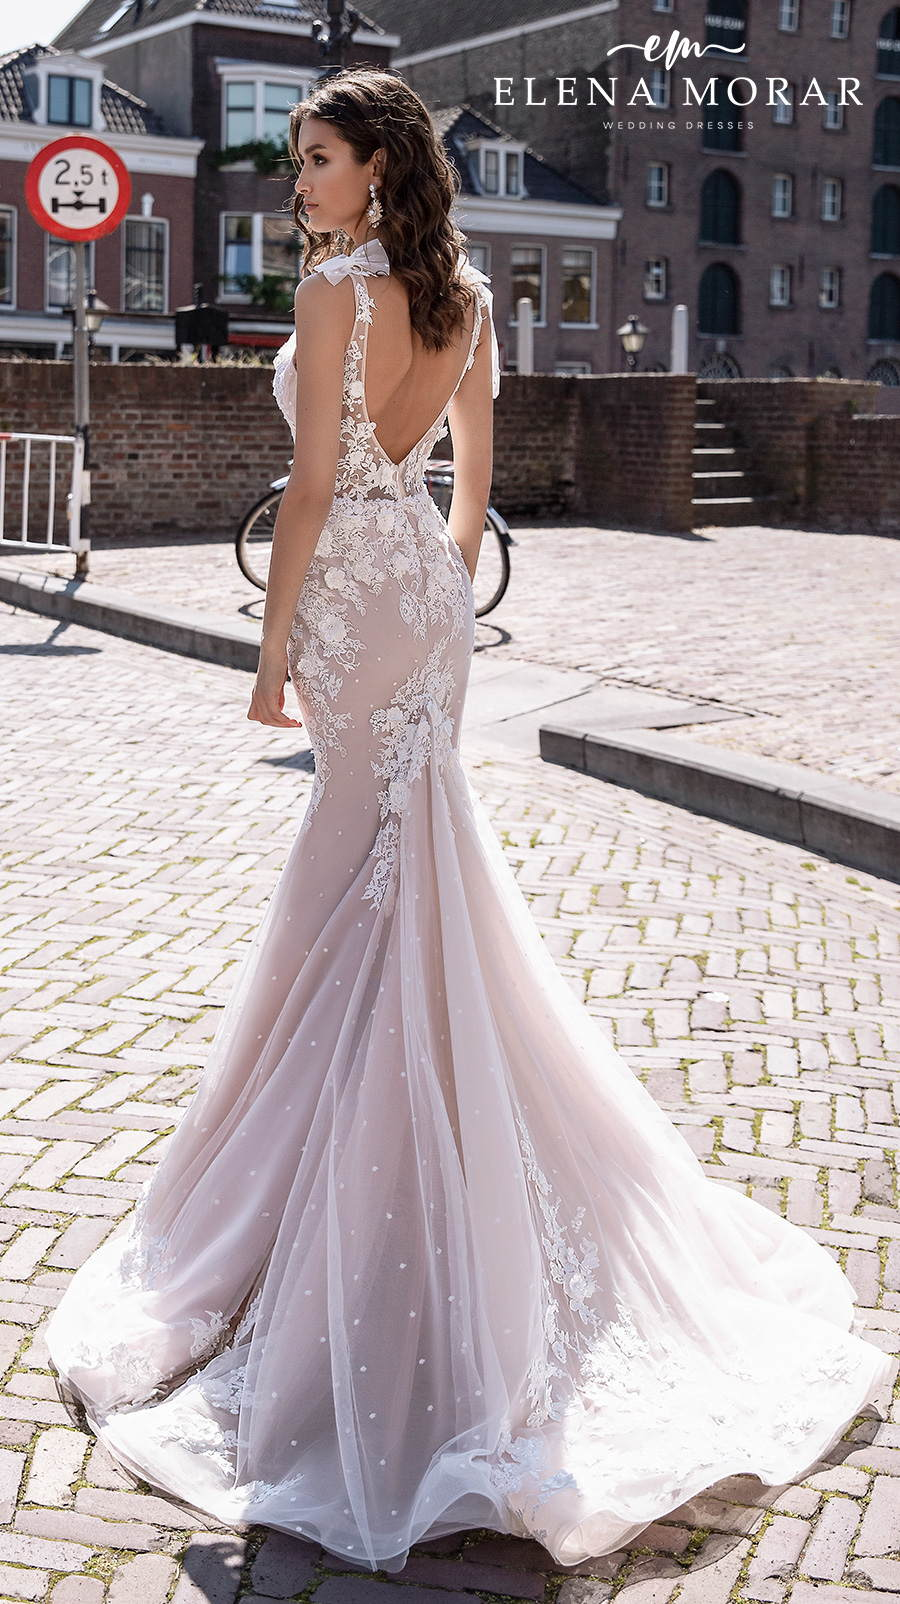 elena morar 2021 rotterdam bridal sleeveless ribbon strap v neck heavily embellished bodice romantic blush mermaid wedding dress v back sweep train (rm004) mv bv